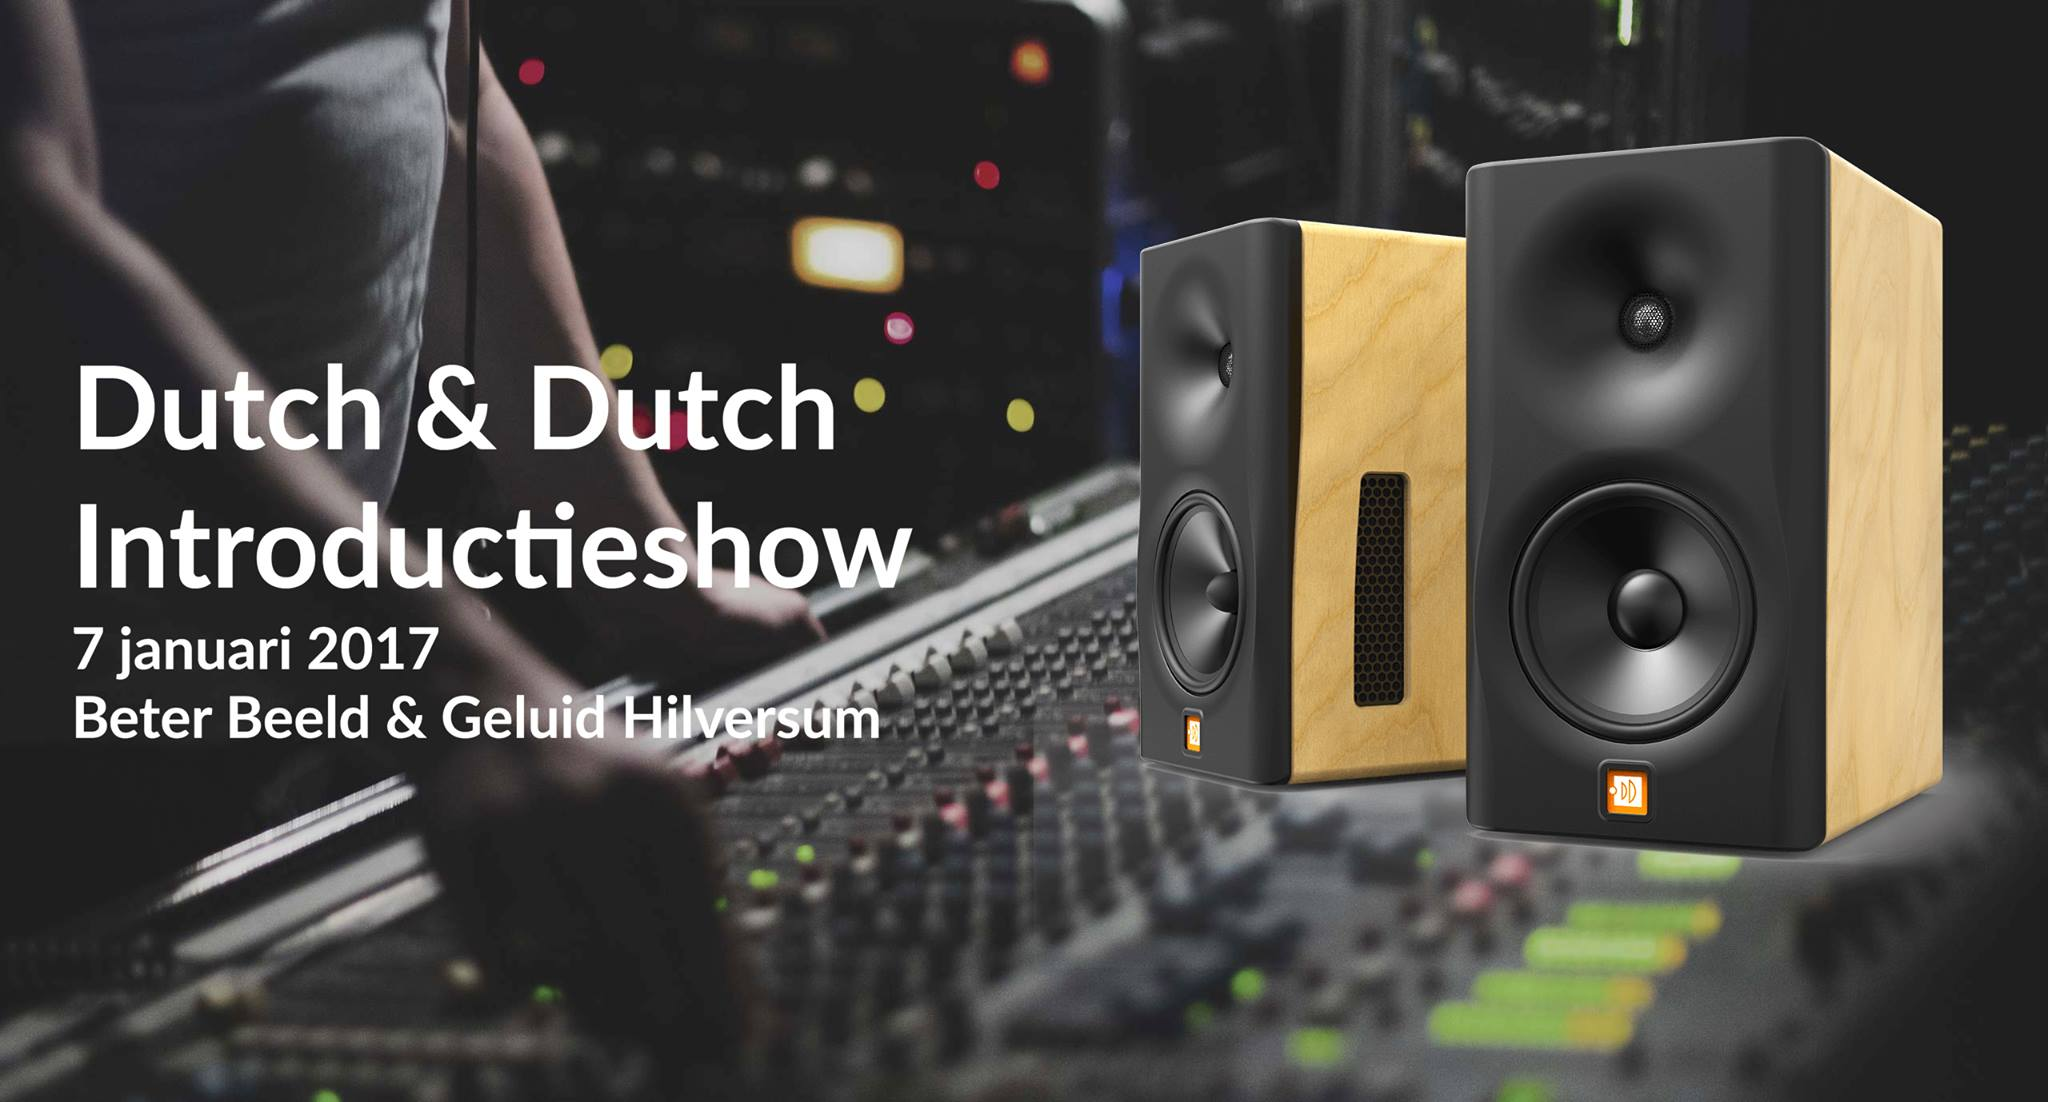 Dutch & Dutch Introductieshow